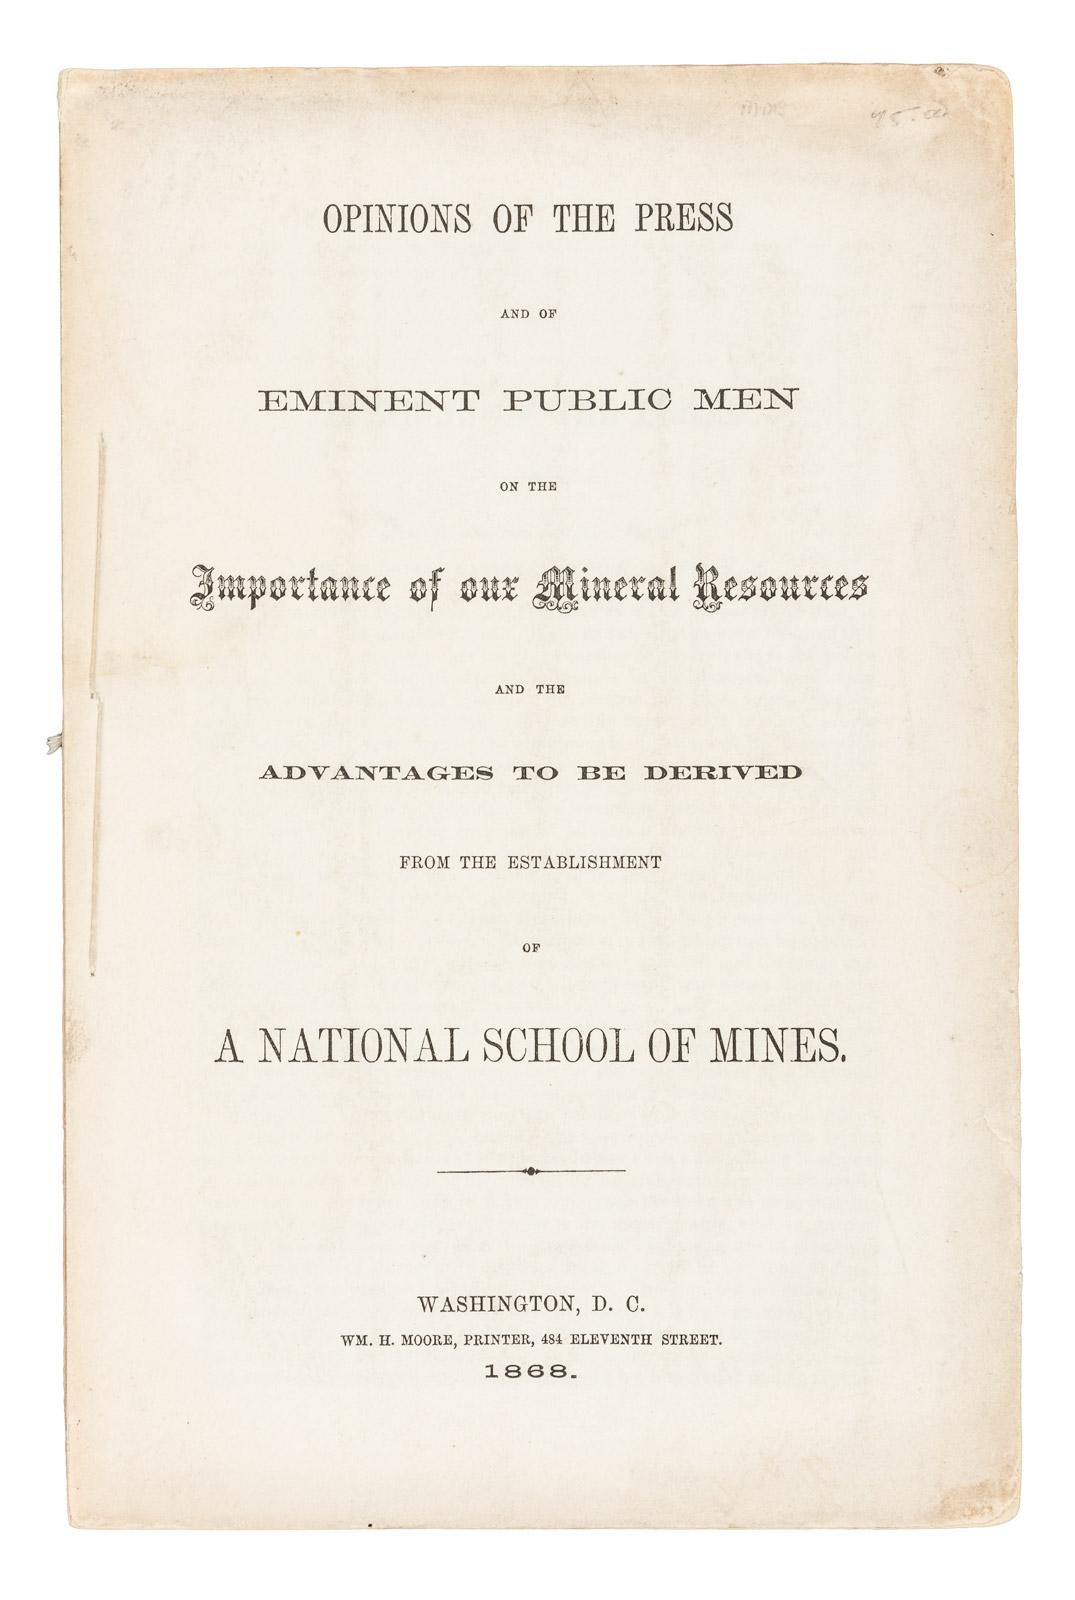 Opinions of the press and of eminent public men on the